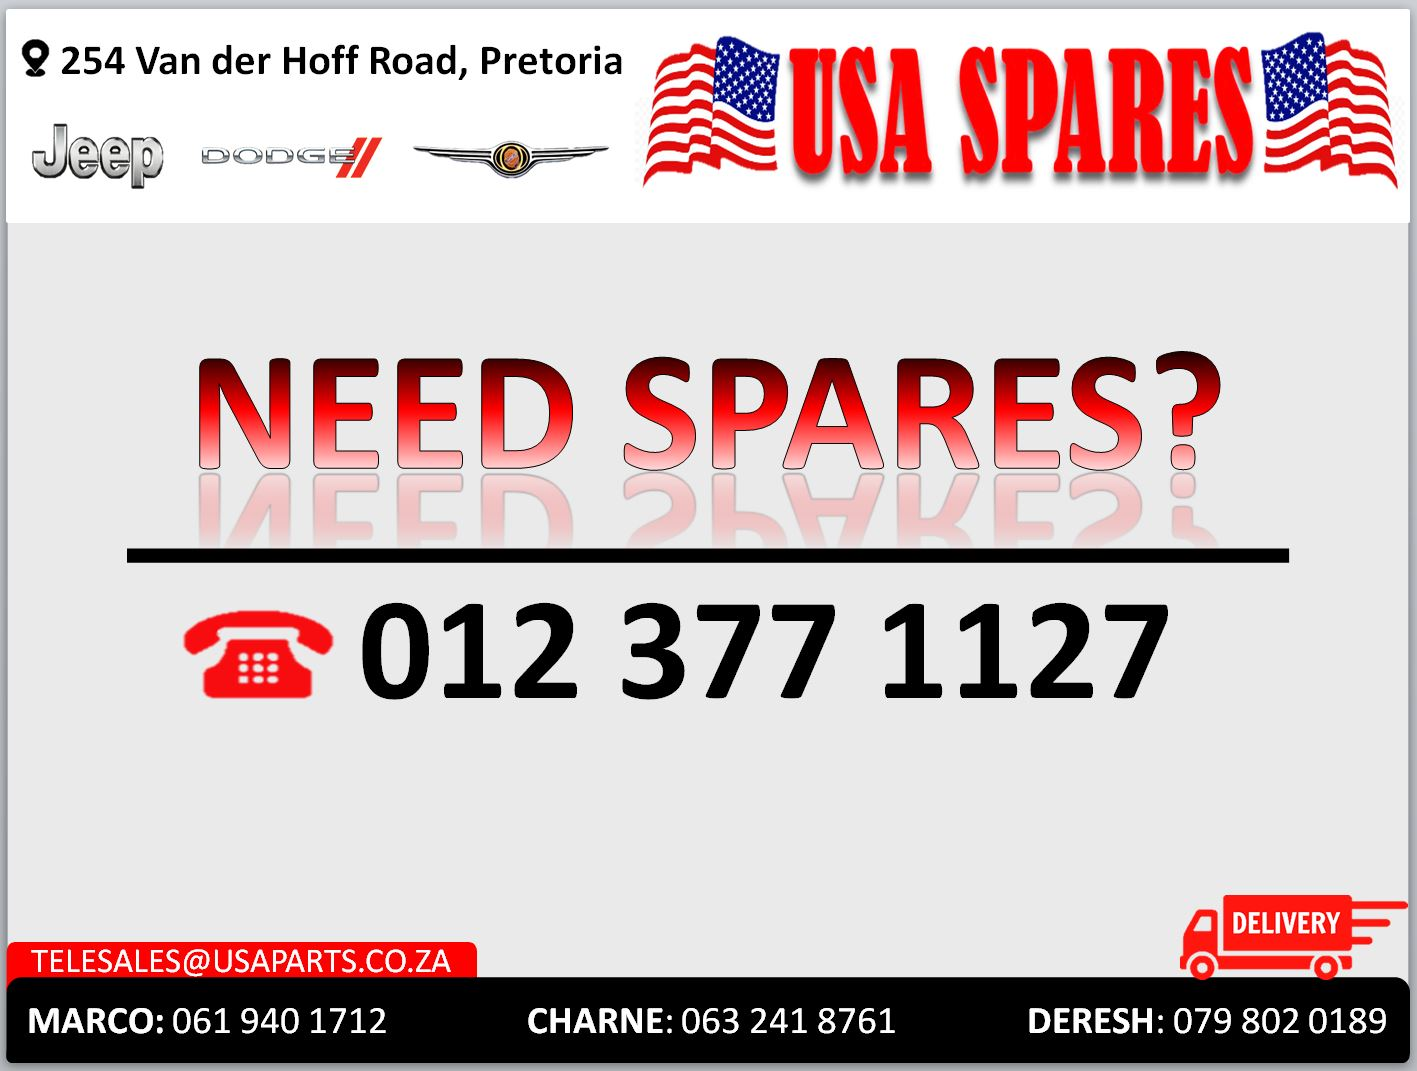 NEED SPARES FOR JEEP/DODGE/CHRYSLER? WE GOT YOUR PARTS